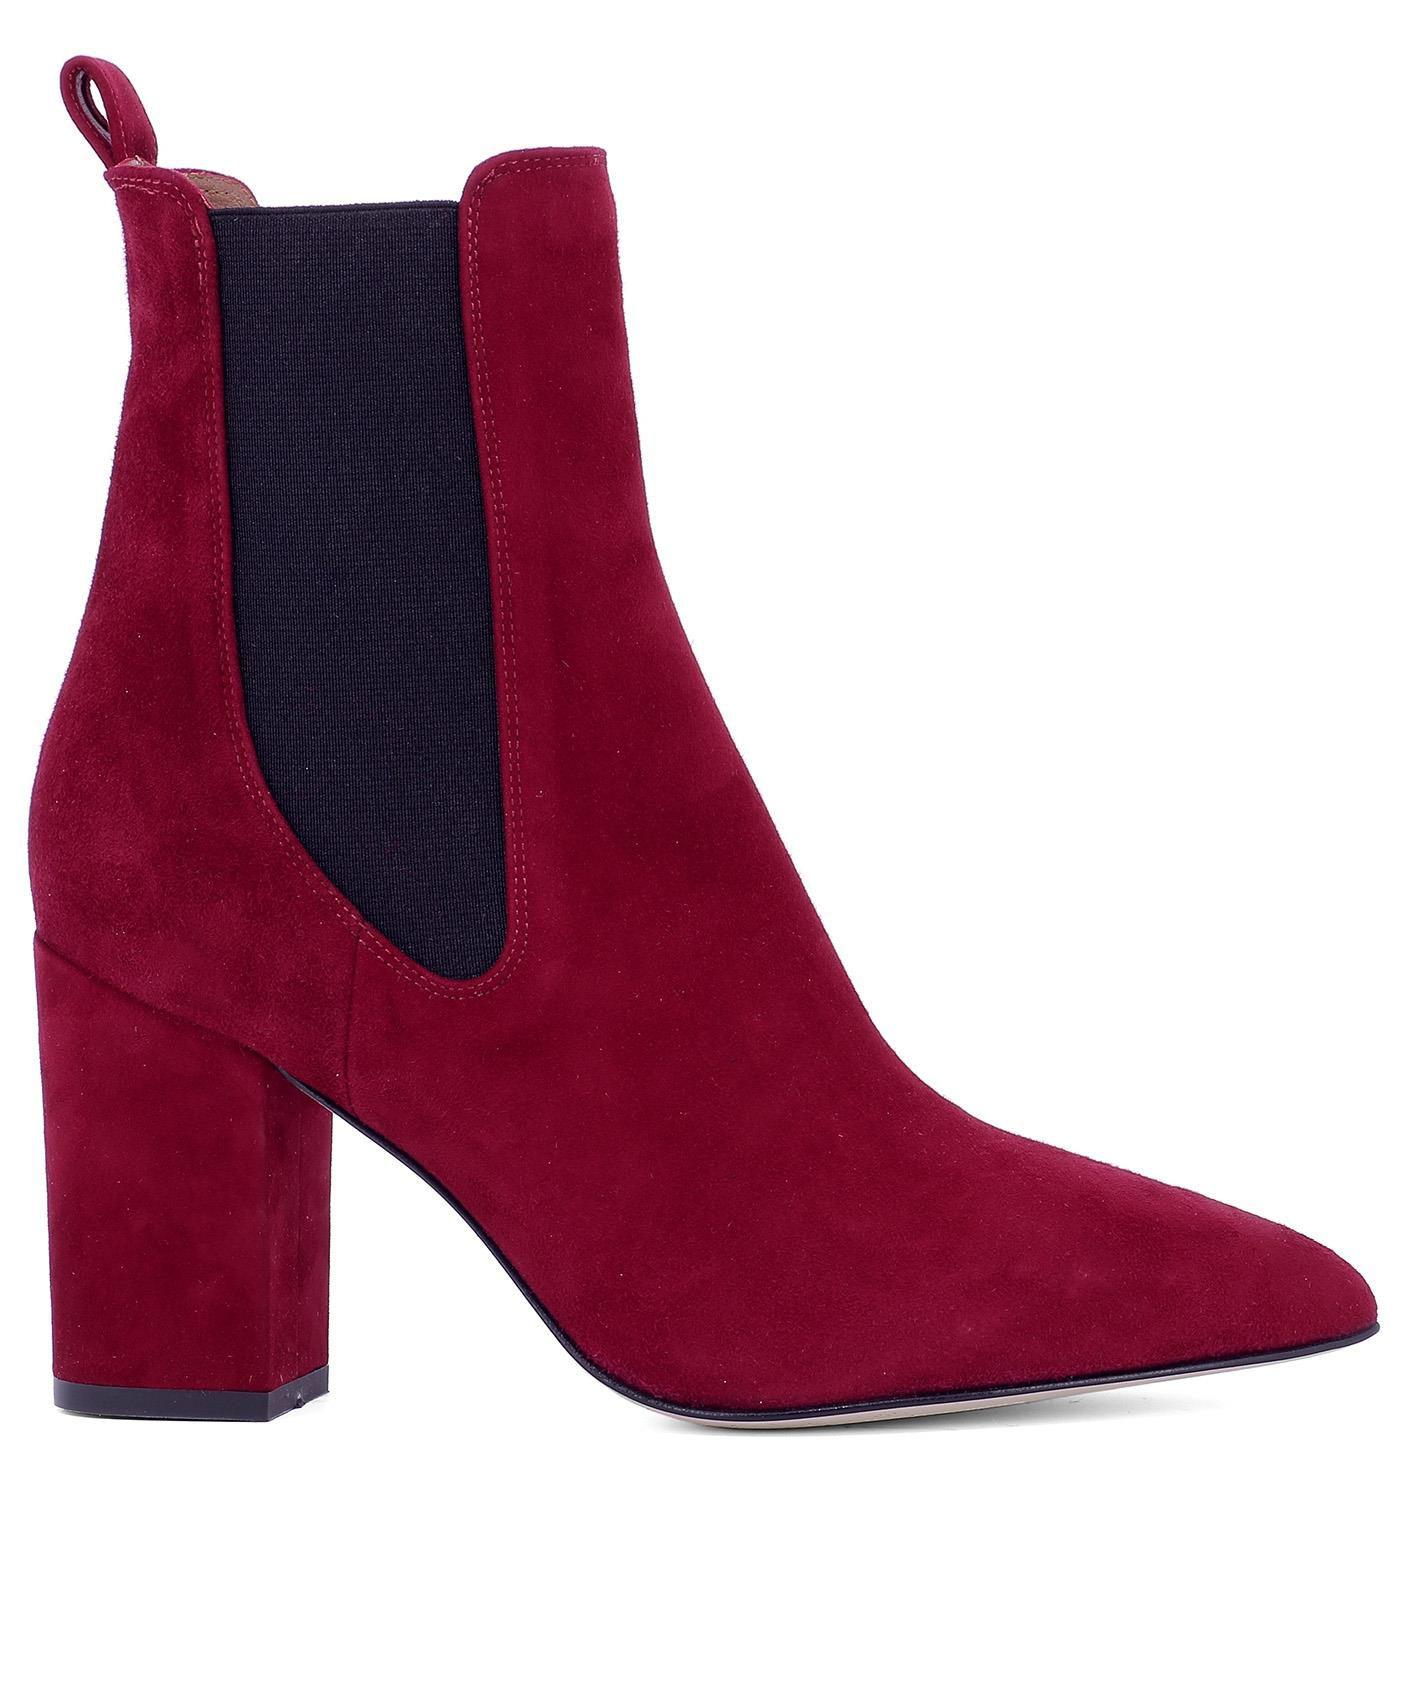 Texas Texas Red Suede Red in Paris Boots Ankle Lyst Women's Women's Women's 7qpSBwR